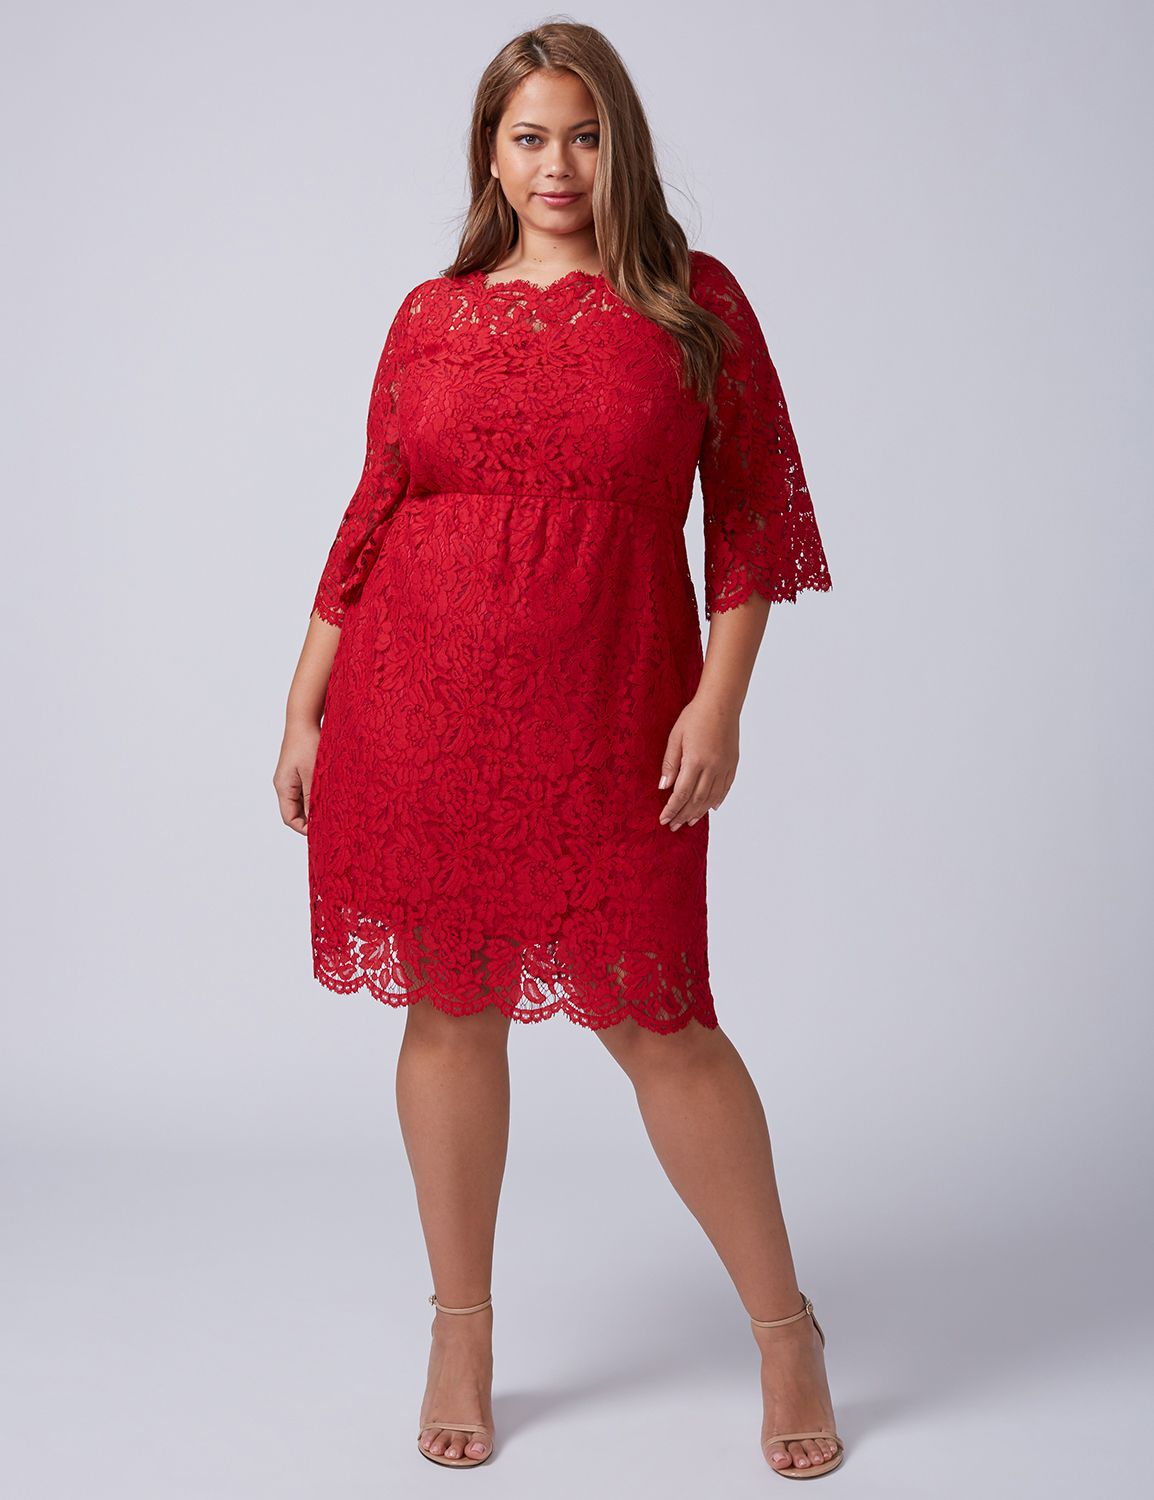 Fancy Plus Size Dresses Special Occasion Cocktail Party Dresses